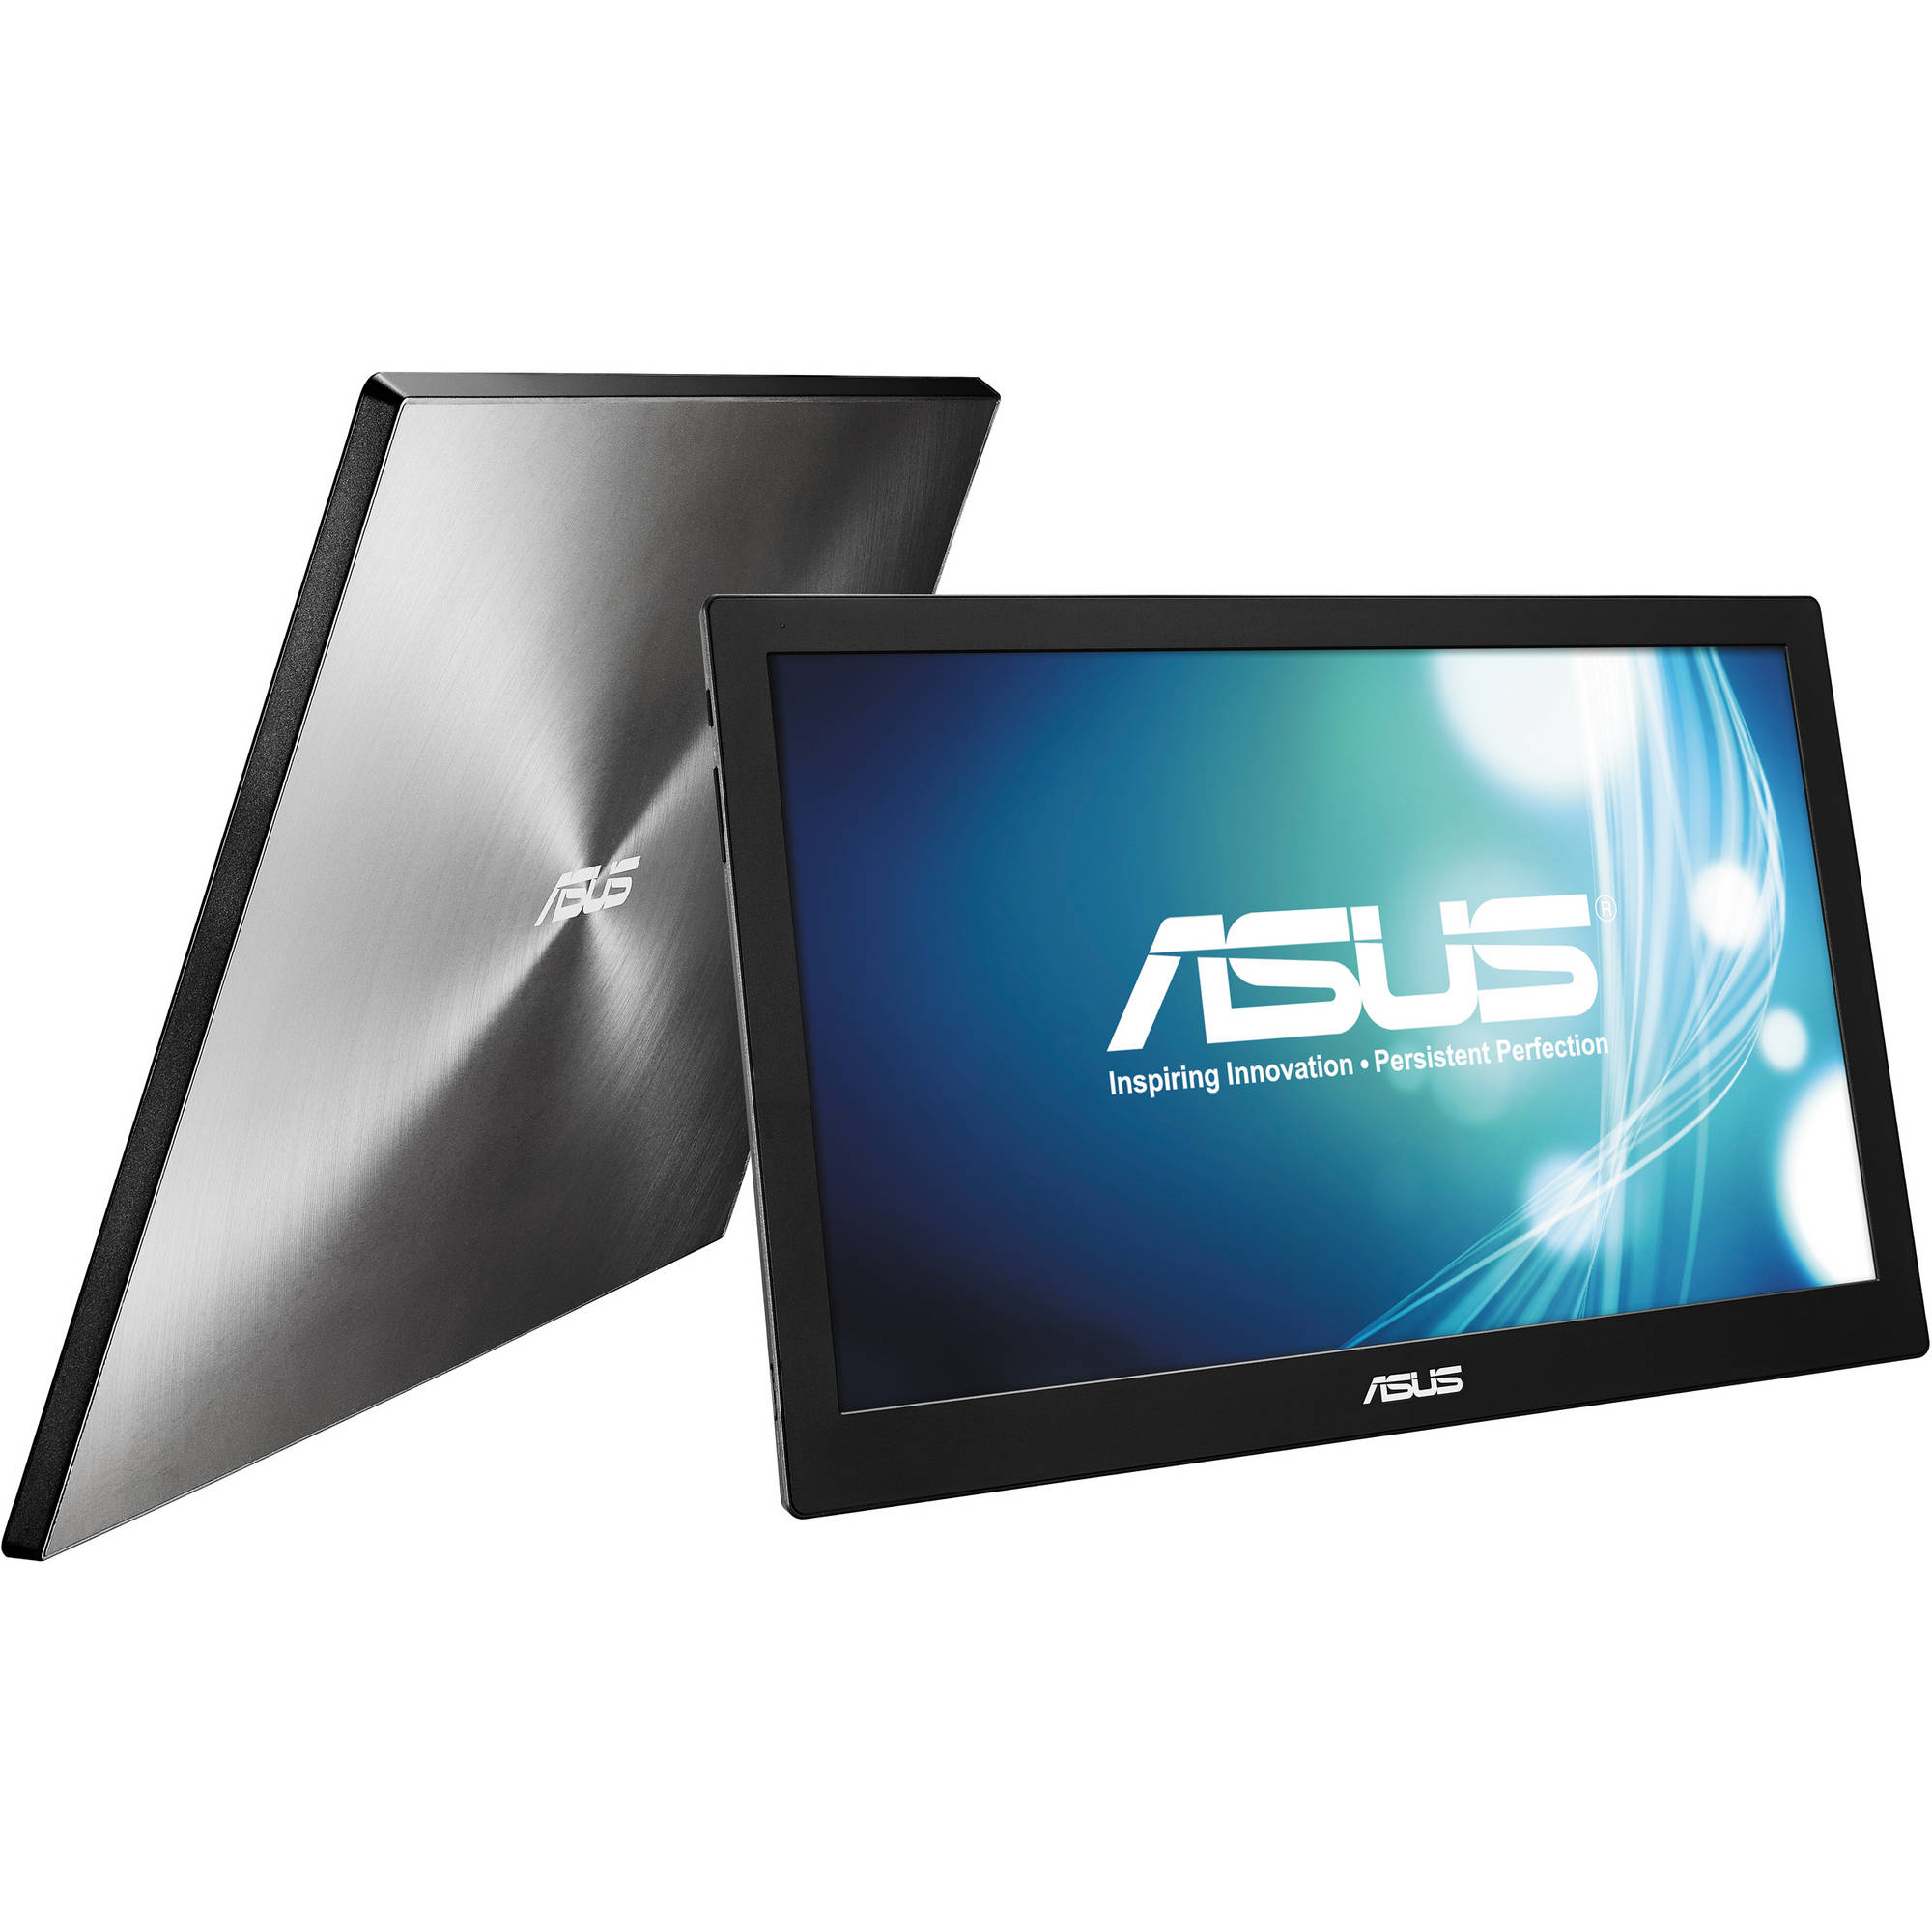 Refurbished - ASUS MB169B+ 15.6 14ms Widescreen IPS Portable Monitor 1920 x 1080 USB 3.0